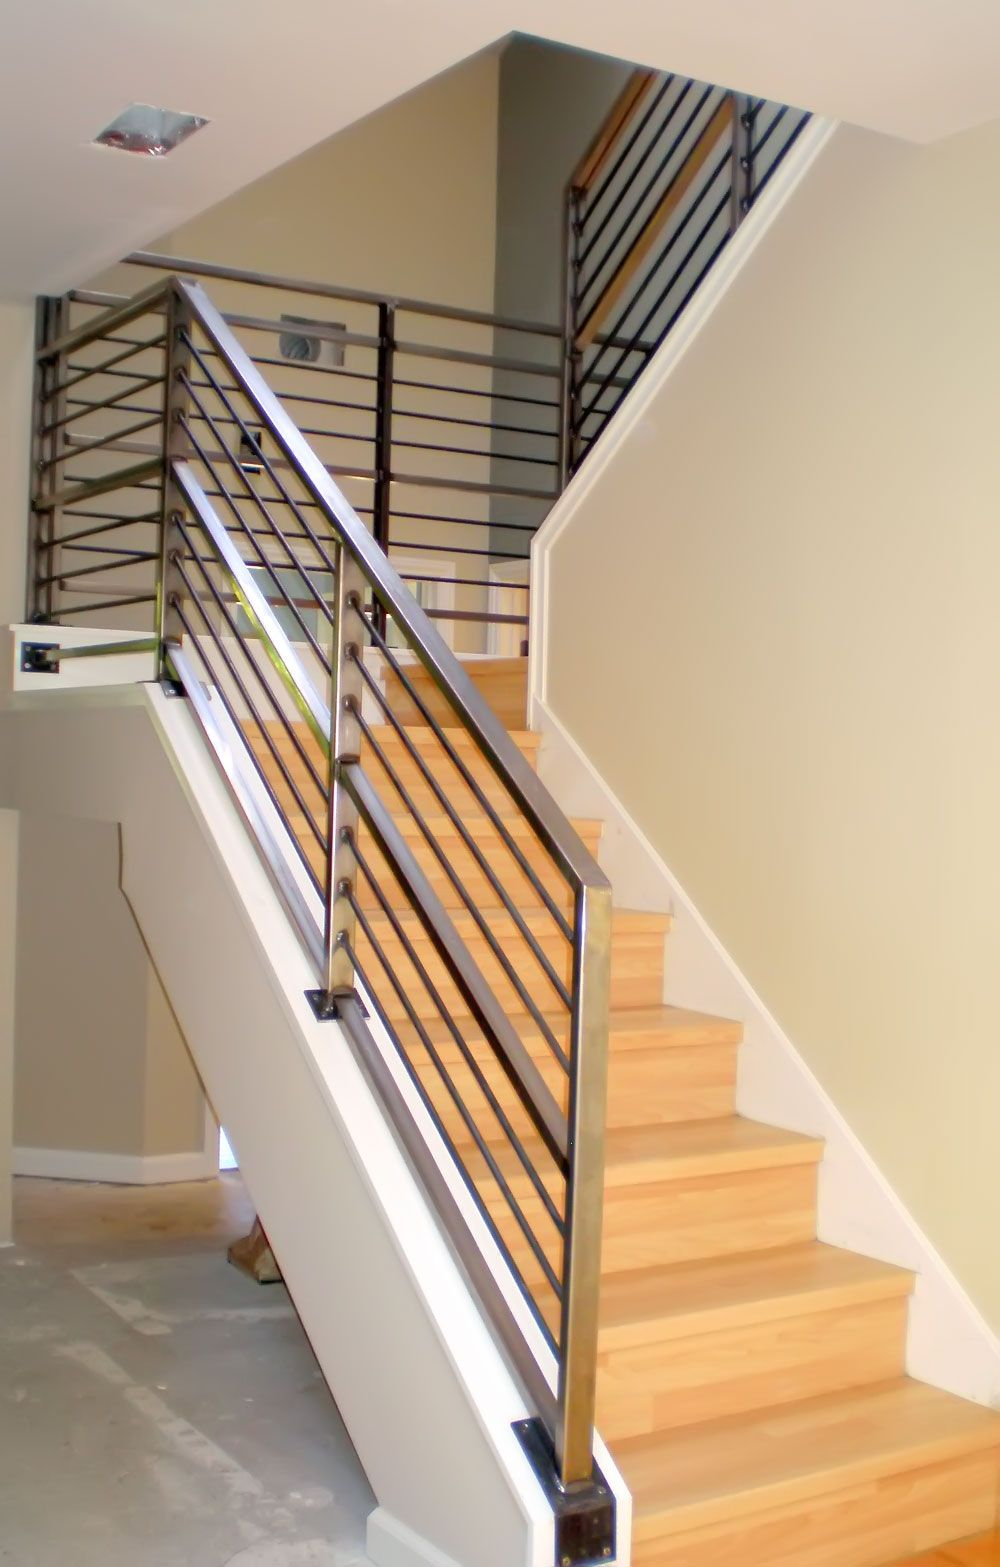 Charming Stair Railing Design Ideas To Beautify Your Rooms Fancy | Modern Metal Stair Railings Interior | Black Metal | Simple 2Nd Floor Railing Wood Stairs Iron Railing Design | Stair Heavy | Overlapping | Aluminum